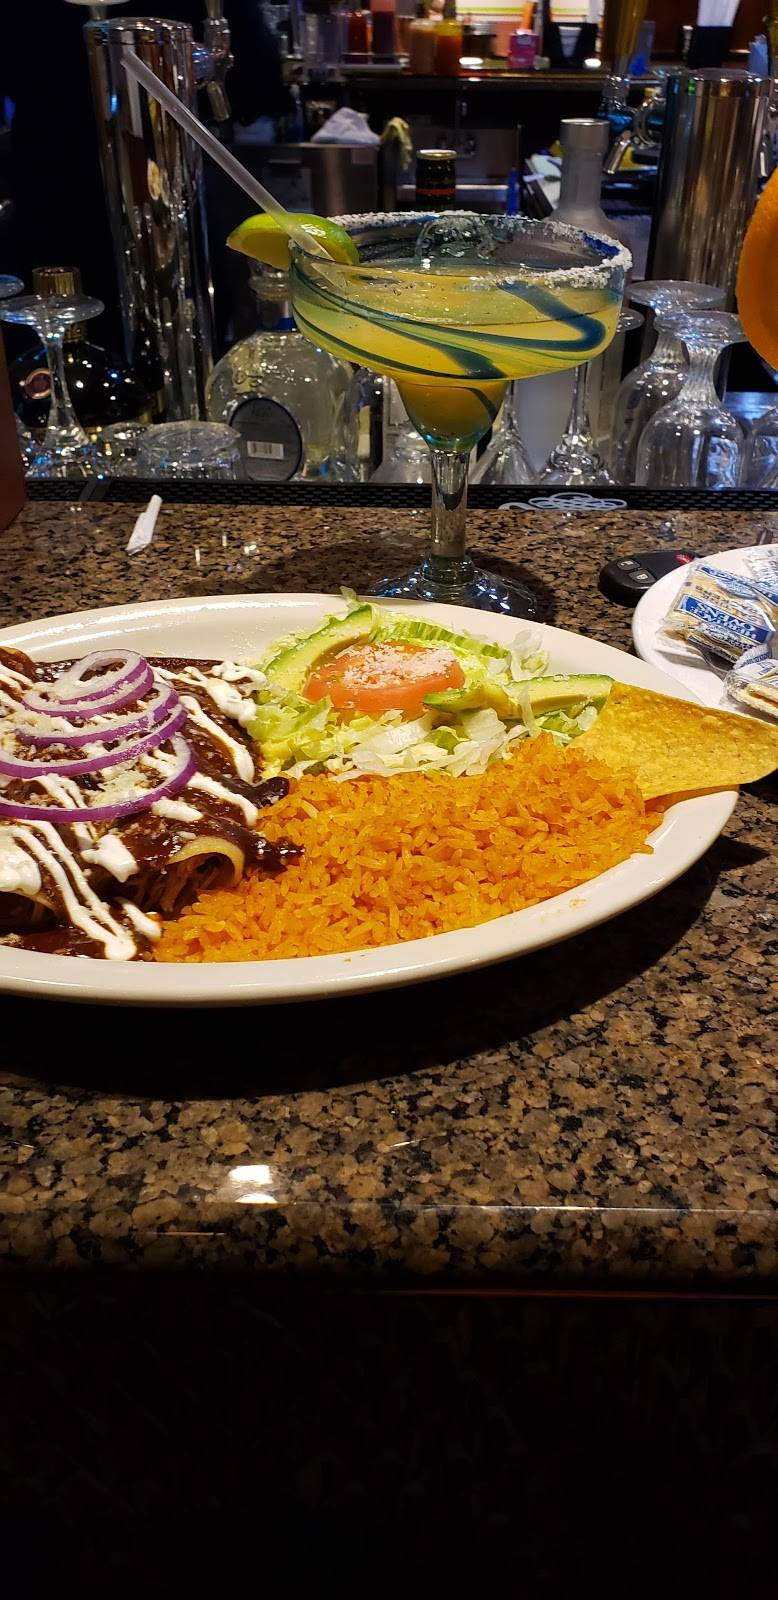 Pacifico Mexican Barr & Grill | restaurant | 506 E Mill St, Plymouth, WI 53073, USA | 9204495160 OR +1 920-449-5160